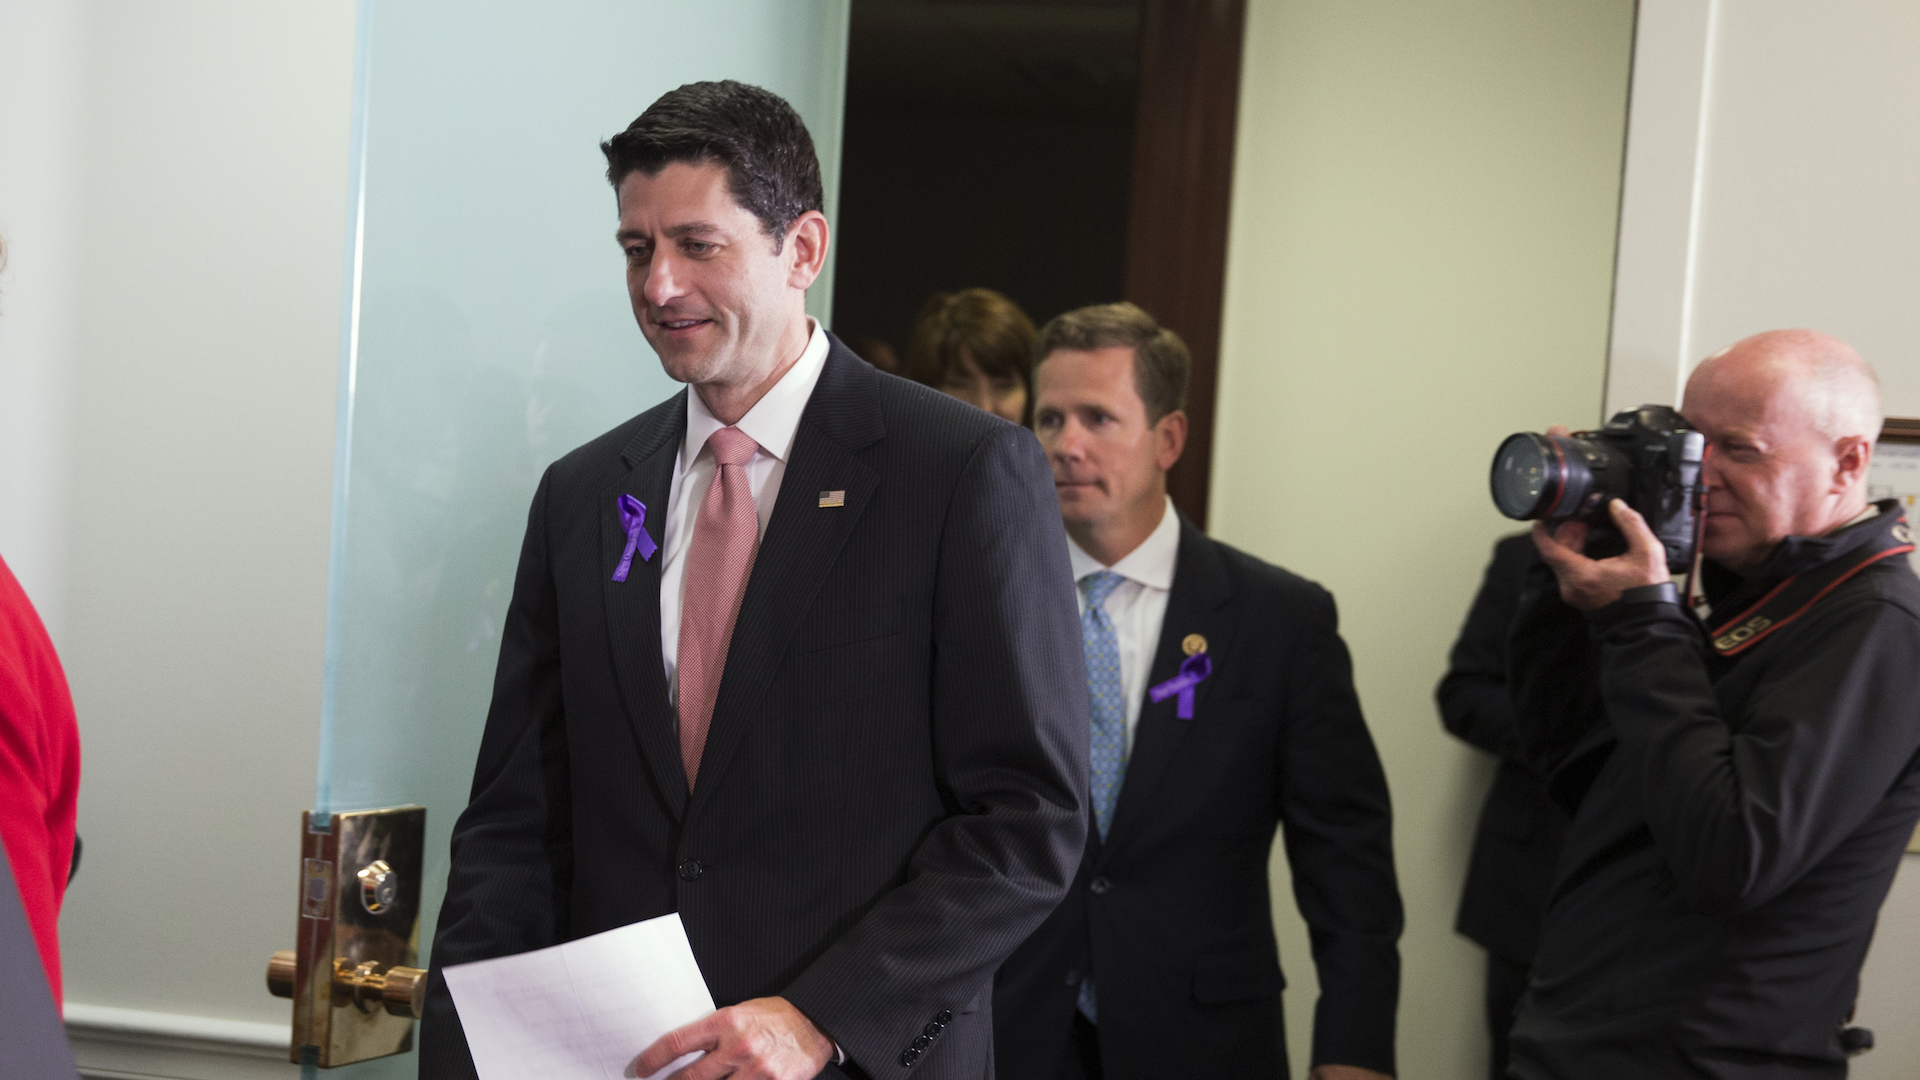 Has Donald Trump stolen Paul Ryan's party out from under him?